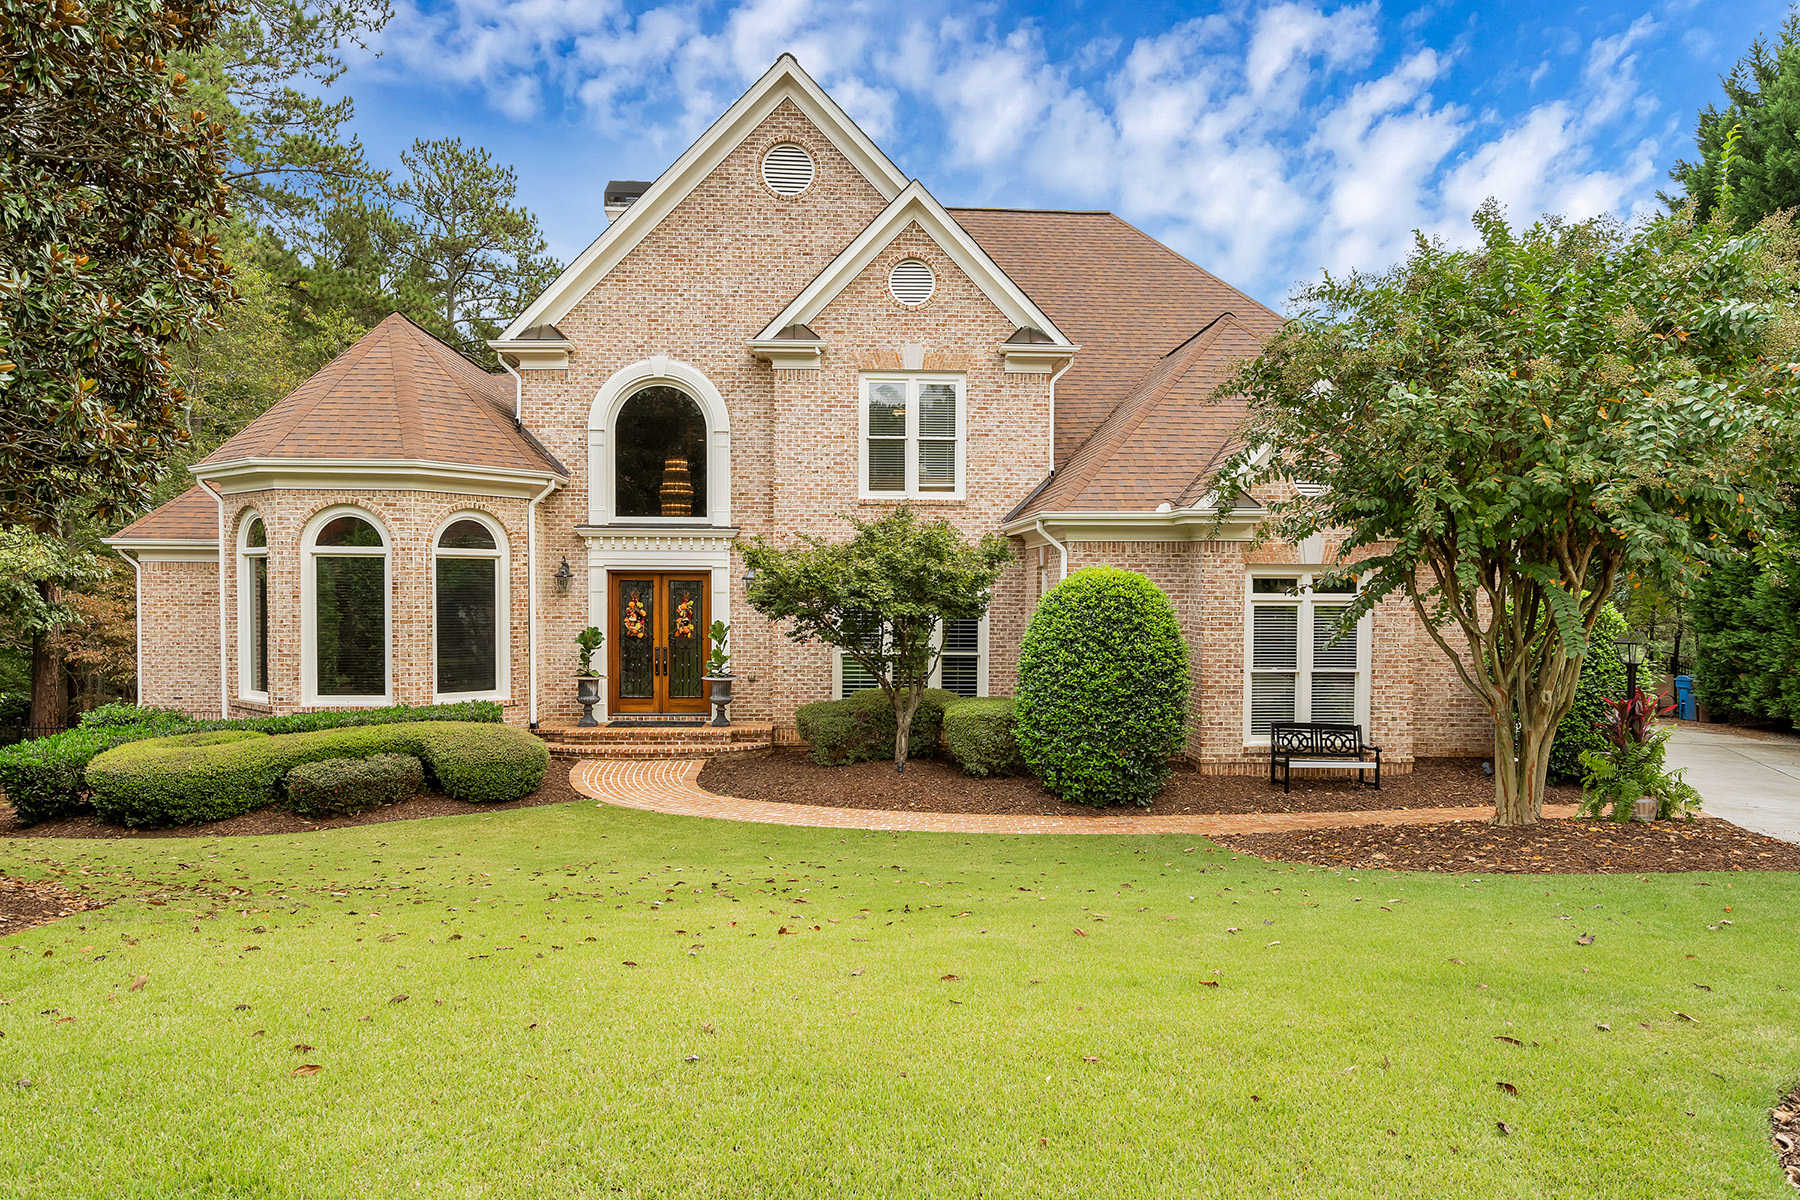 Single Family Home for Sale at Stunning Brick Home in Northshore of Windward 1810 Turnberry Lane Alpharetta, Georgia 30005 United States